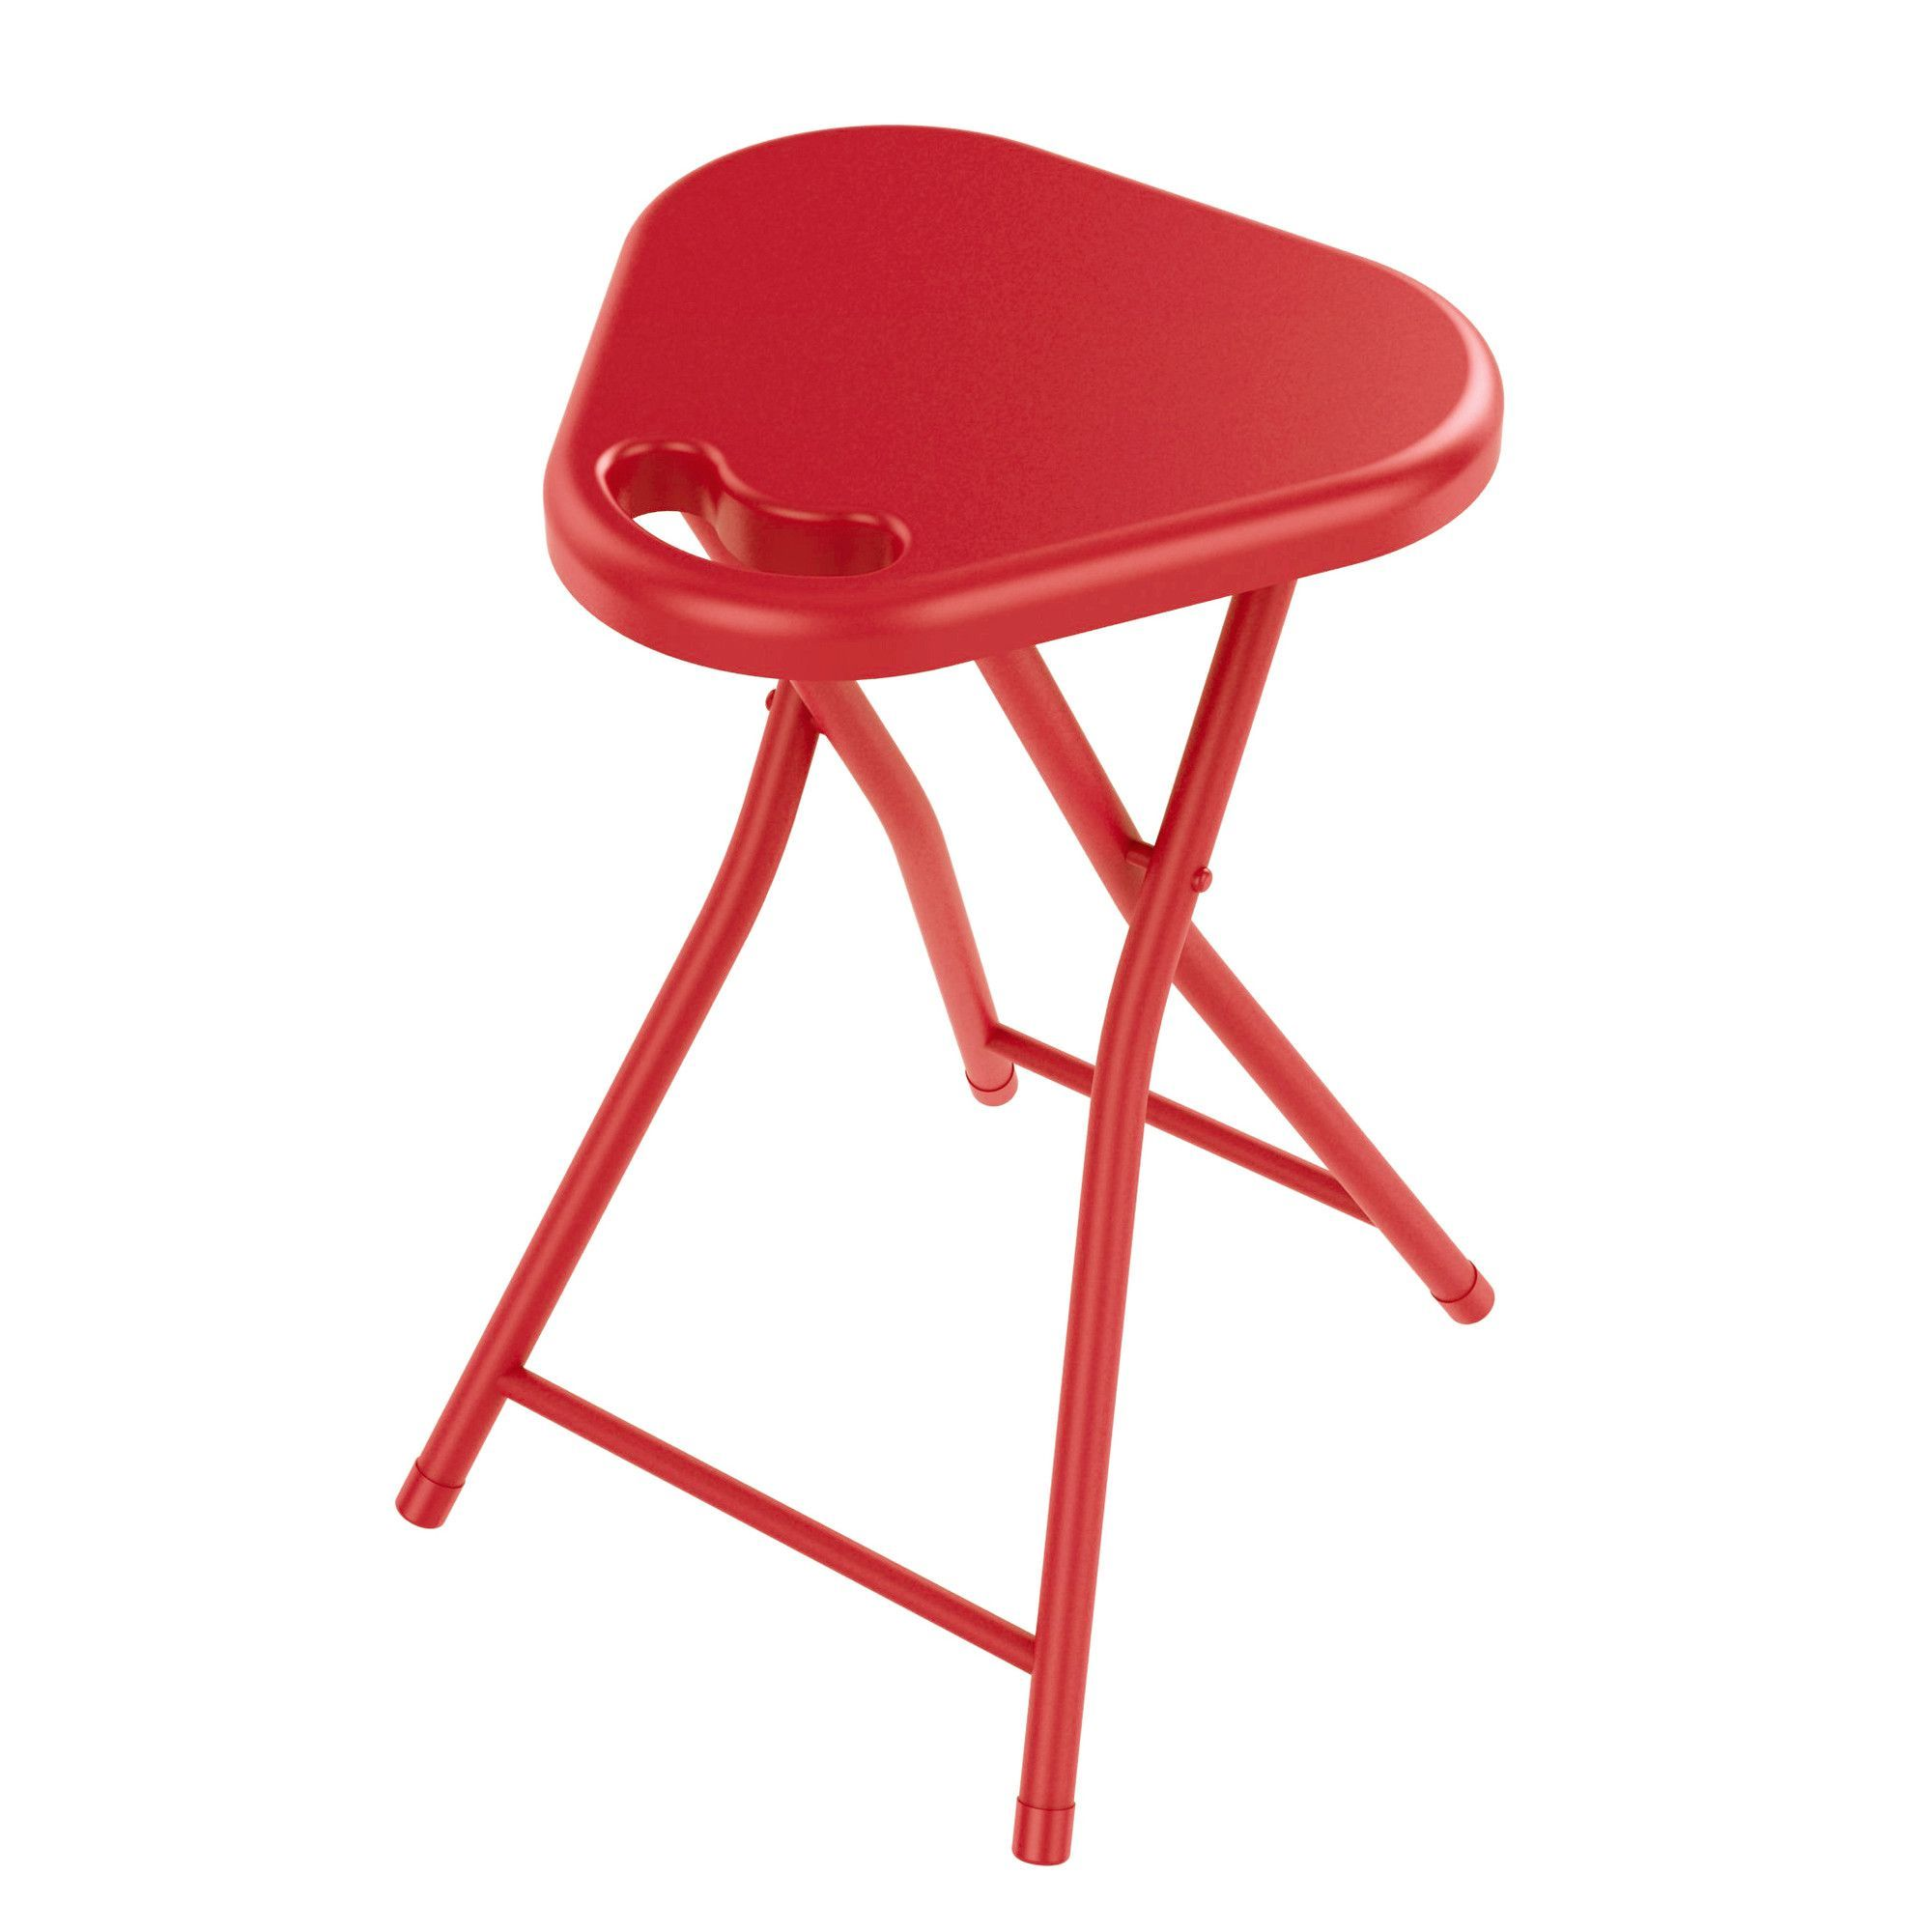 Plastic Folding Chair With Images Folding Stool Plastic